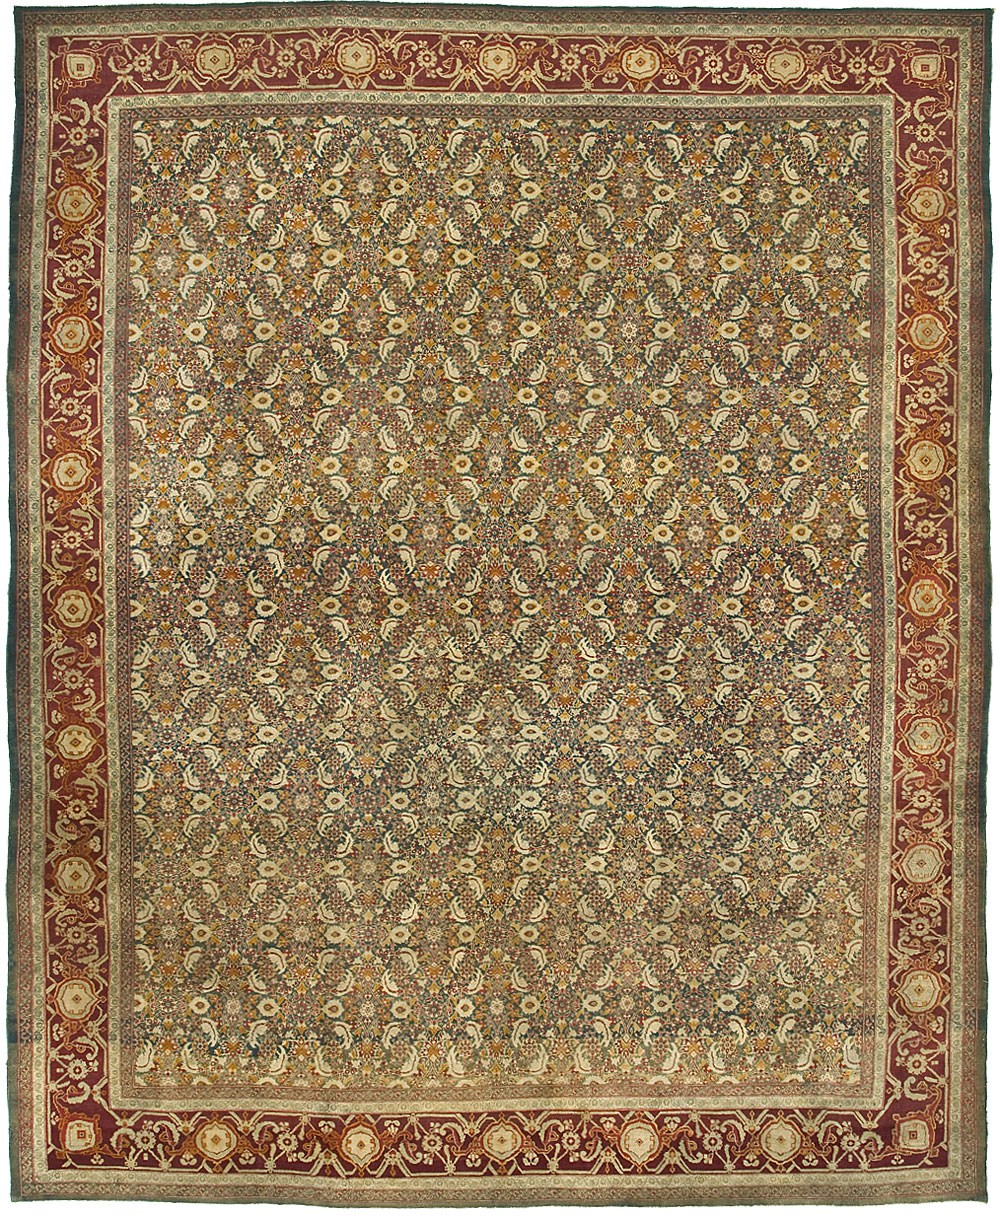 Agra Carpet_17213